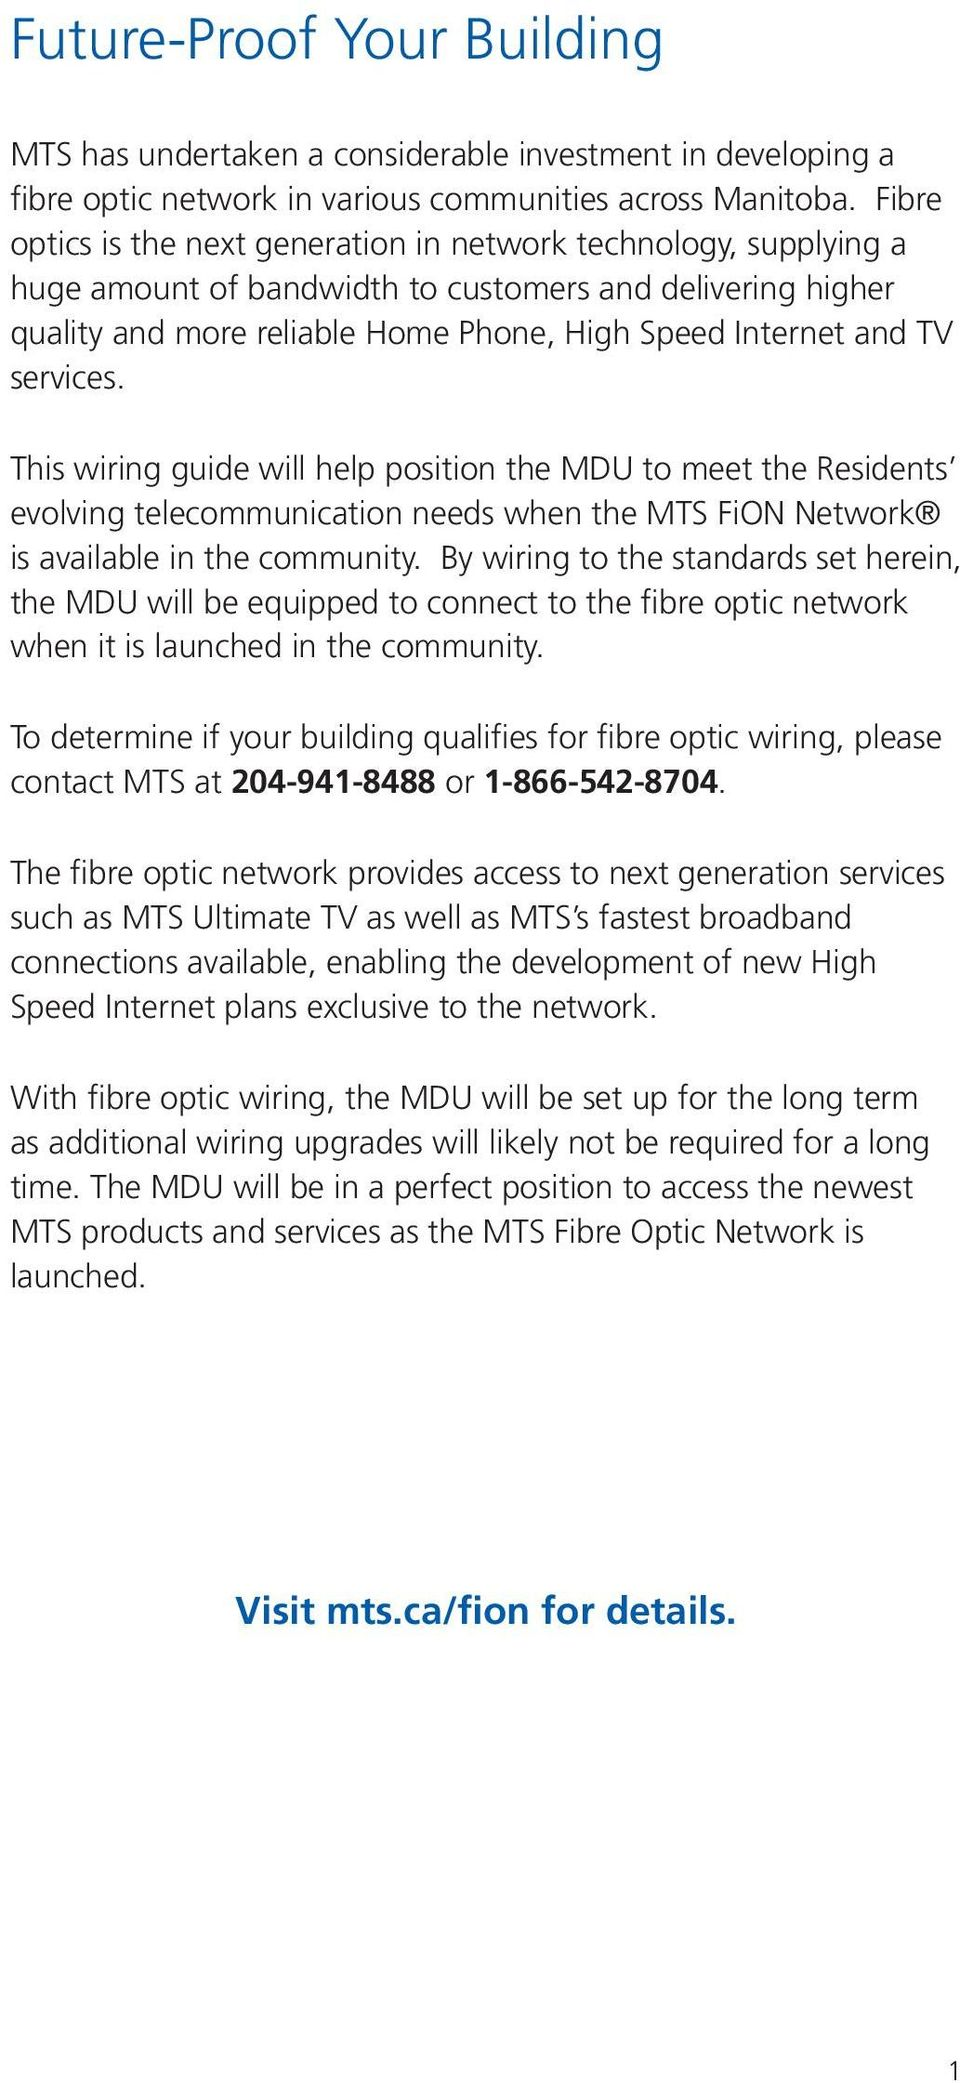 medium resolution of this wiring guide will help position the mdu to meet the residents evolving telecommunication